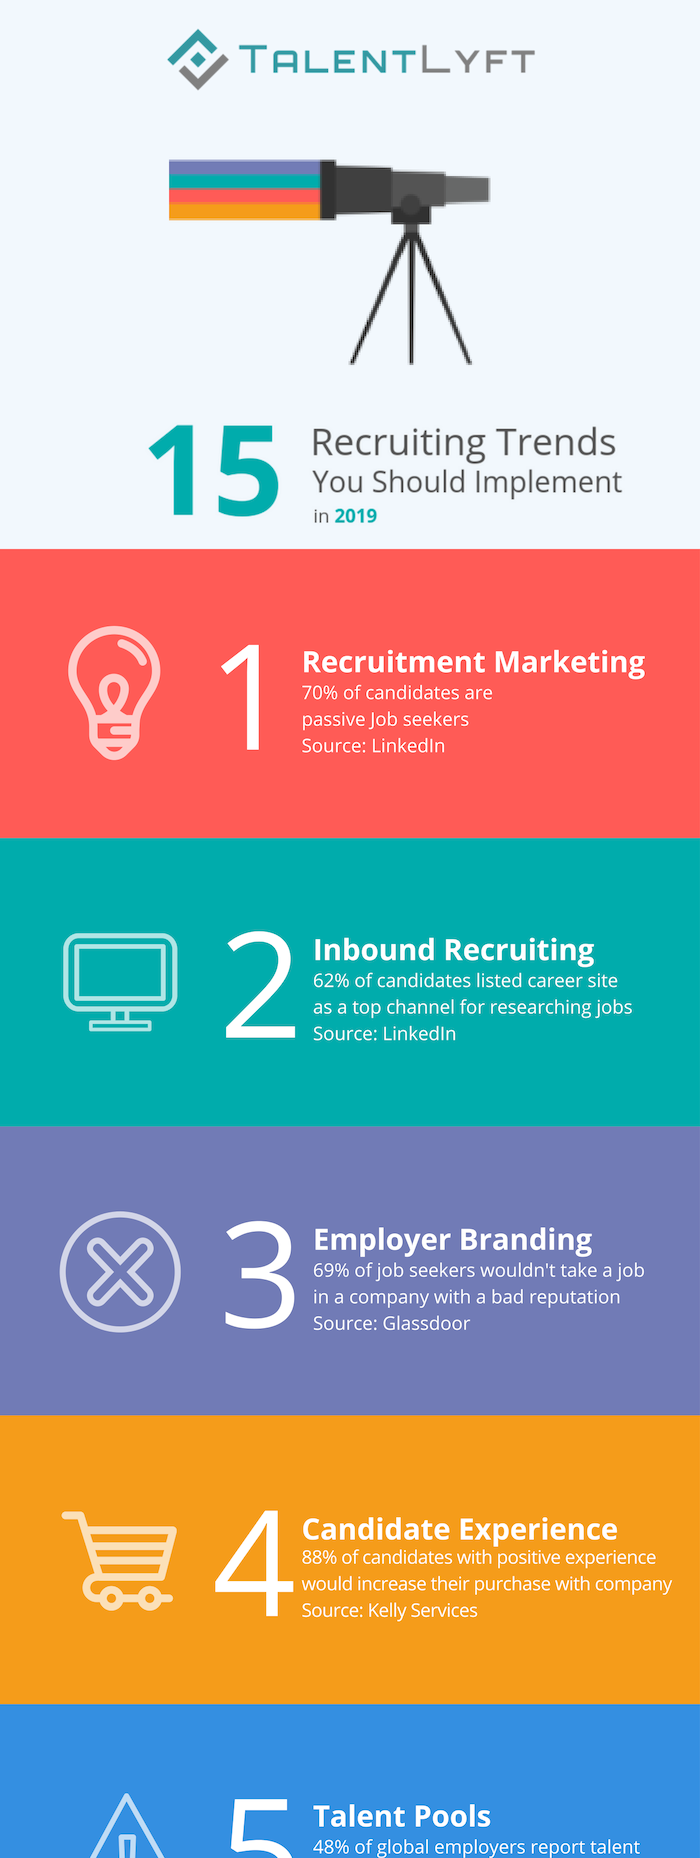 15 Recruiting Trends in 2019